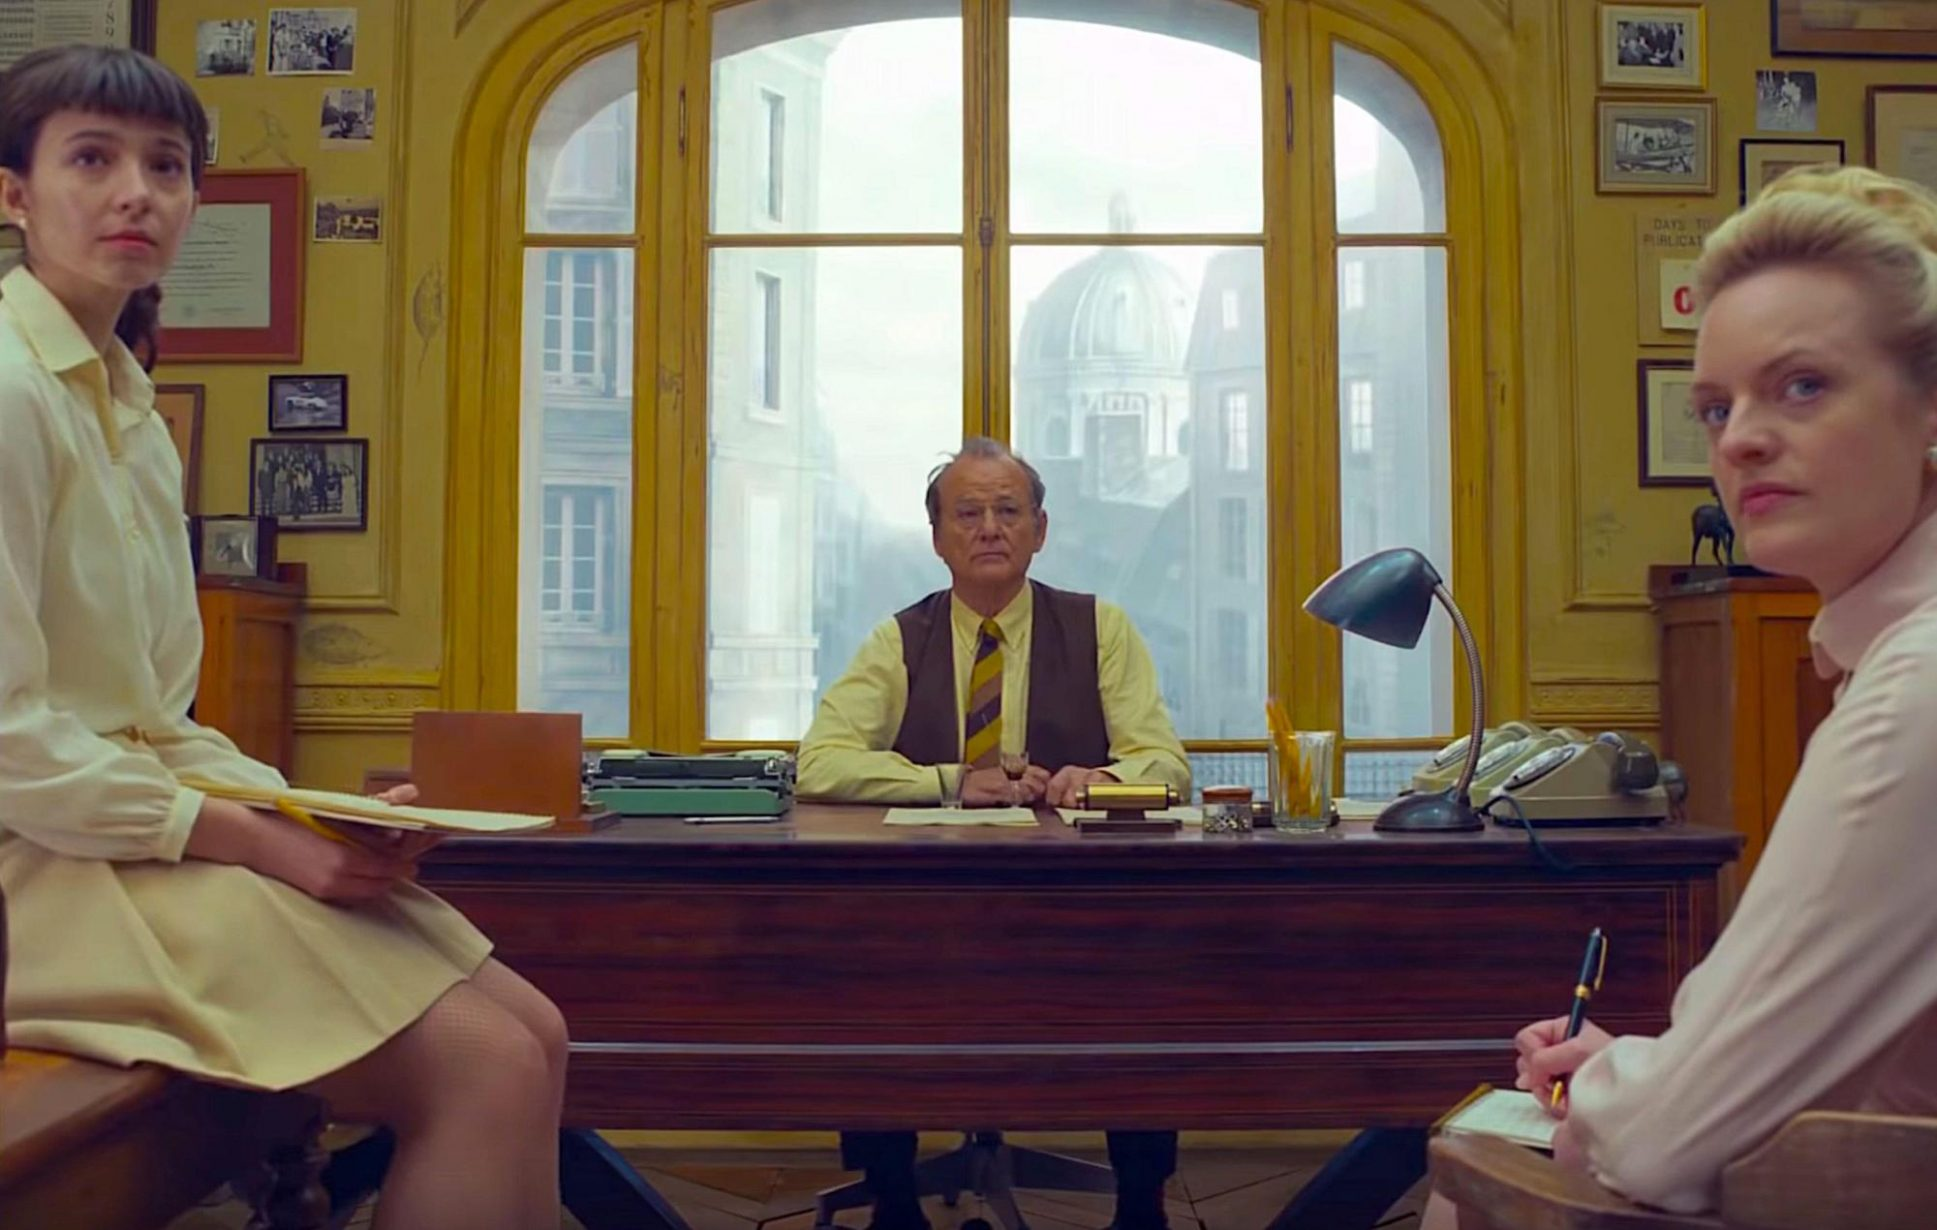 2BYP6C4 THE FRENCH DISPATCH 2020 de Wes Anderson Anjelica Bette Fellini Bill Murray Elisabeth Moss. Prod DB © Searchlight Pictures - American Empirical Pictur